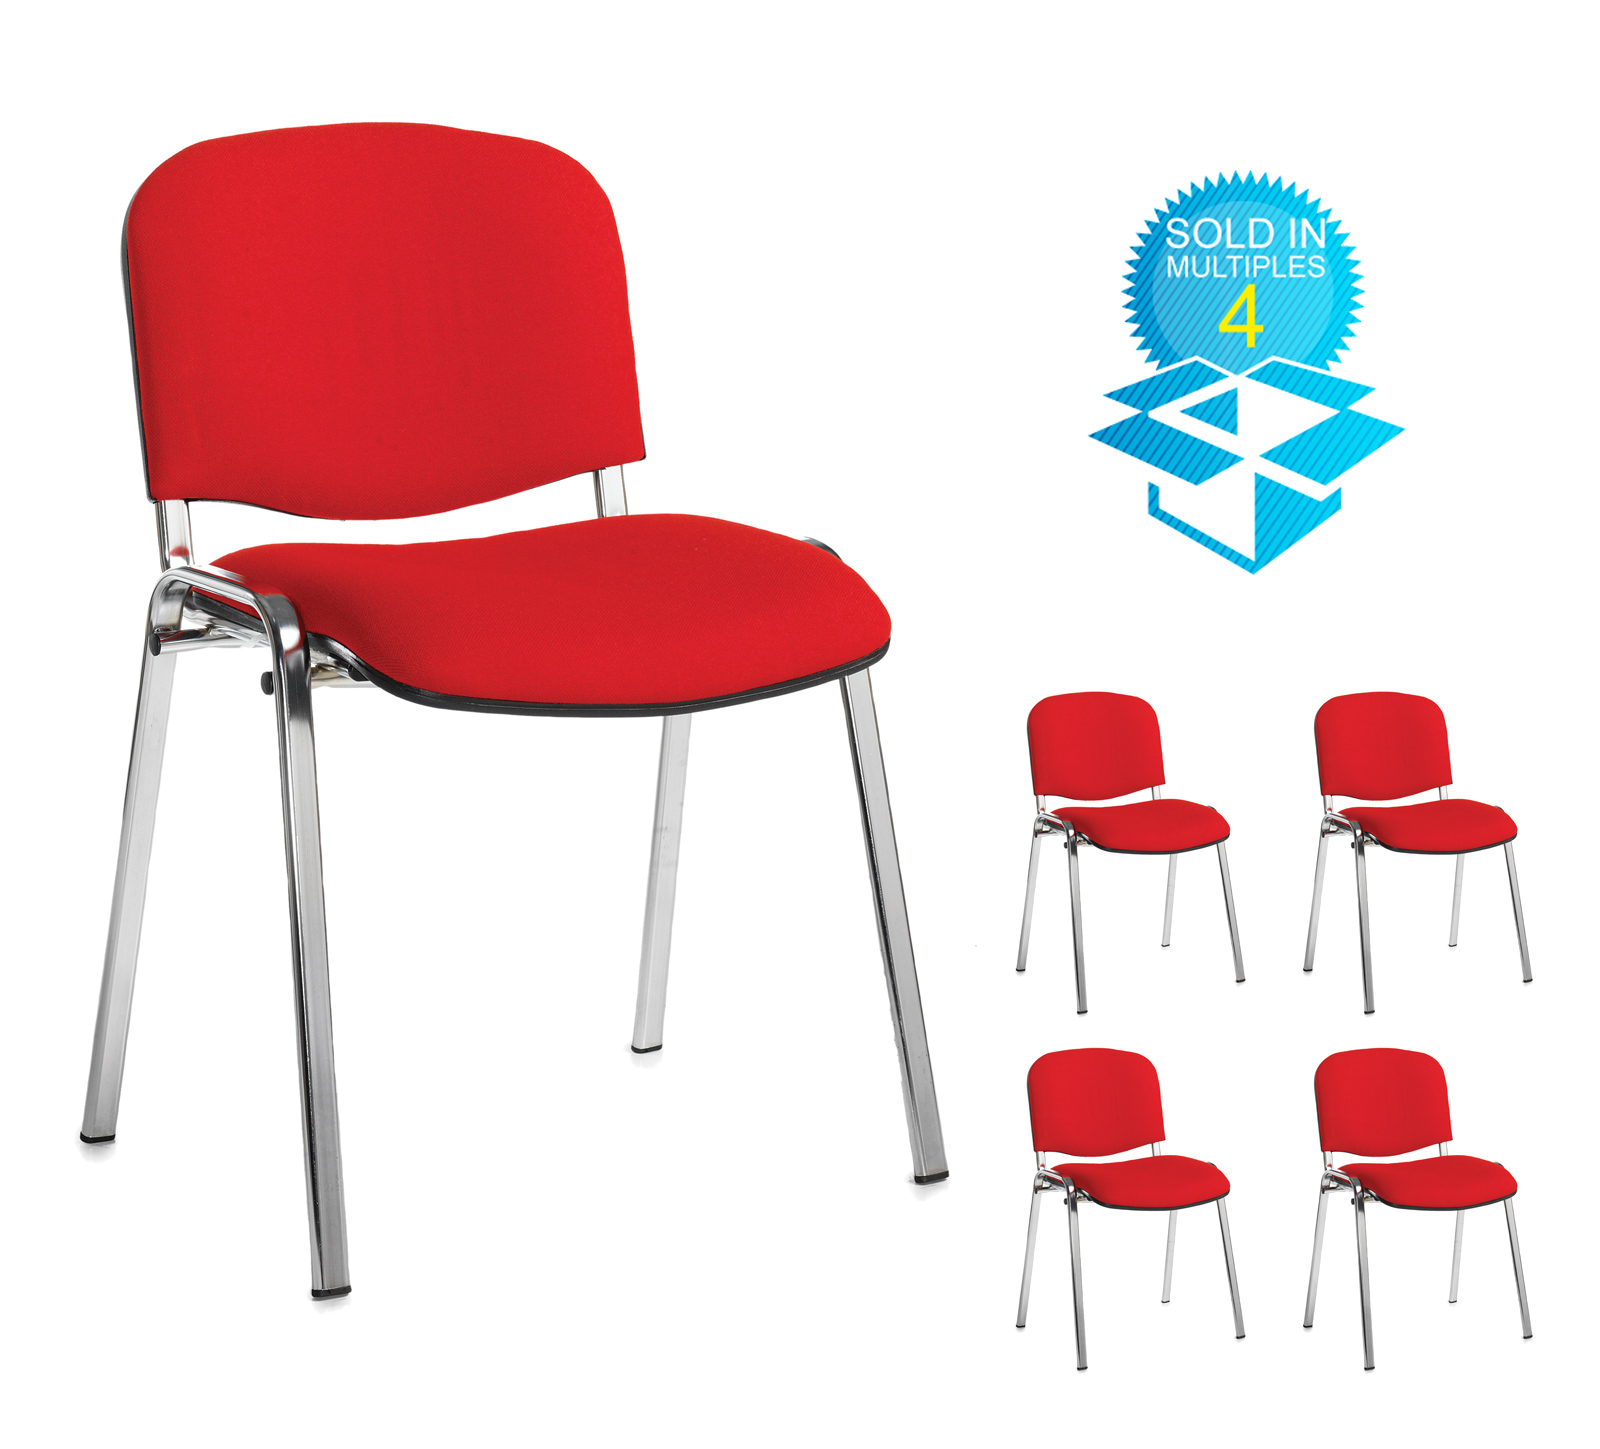 Taurus meeting room stackable chair (box of 4) with chrome frame and no arms - red